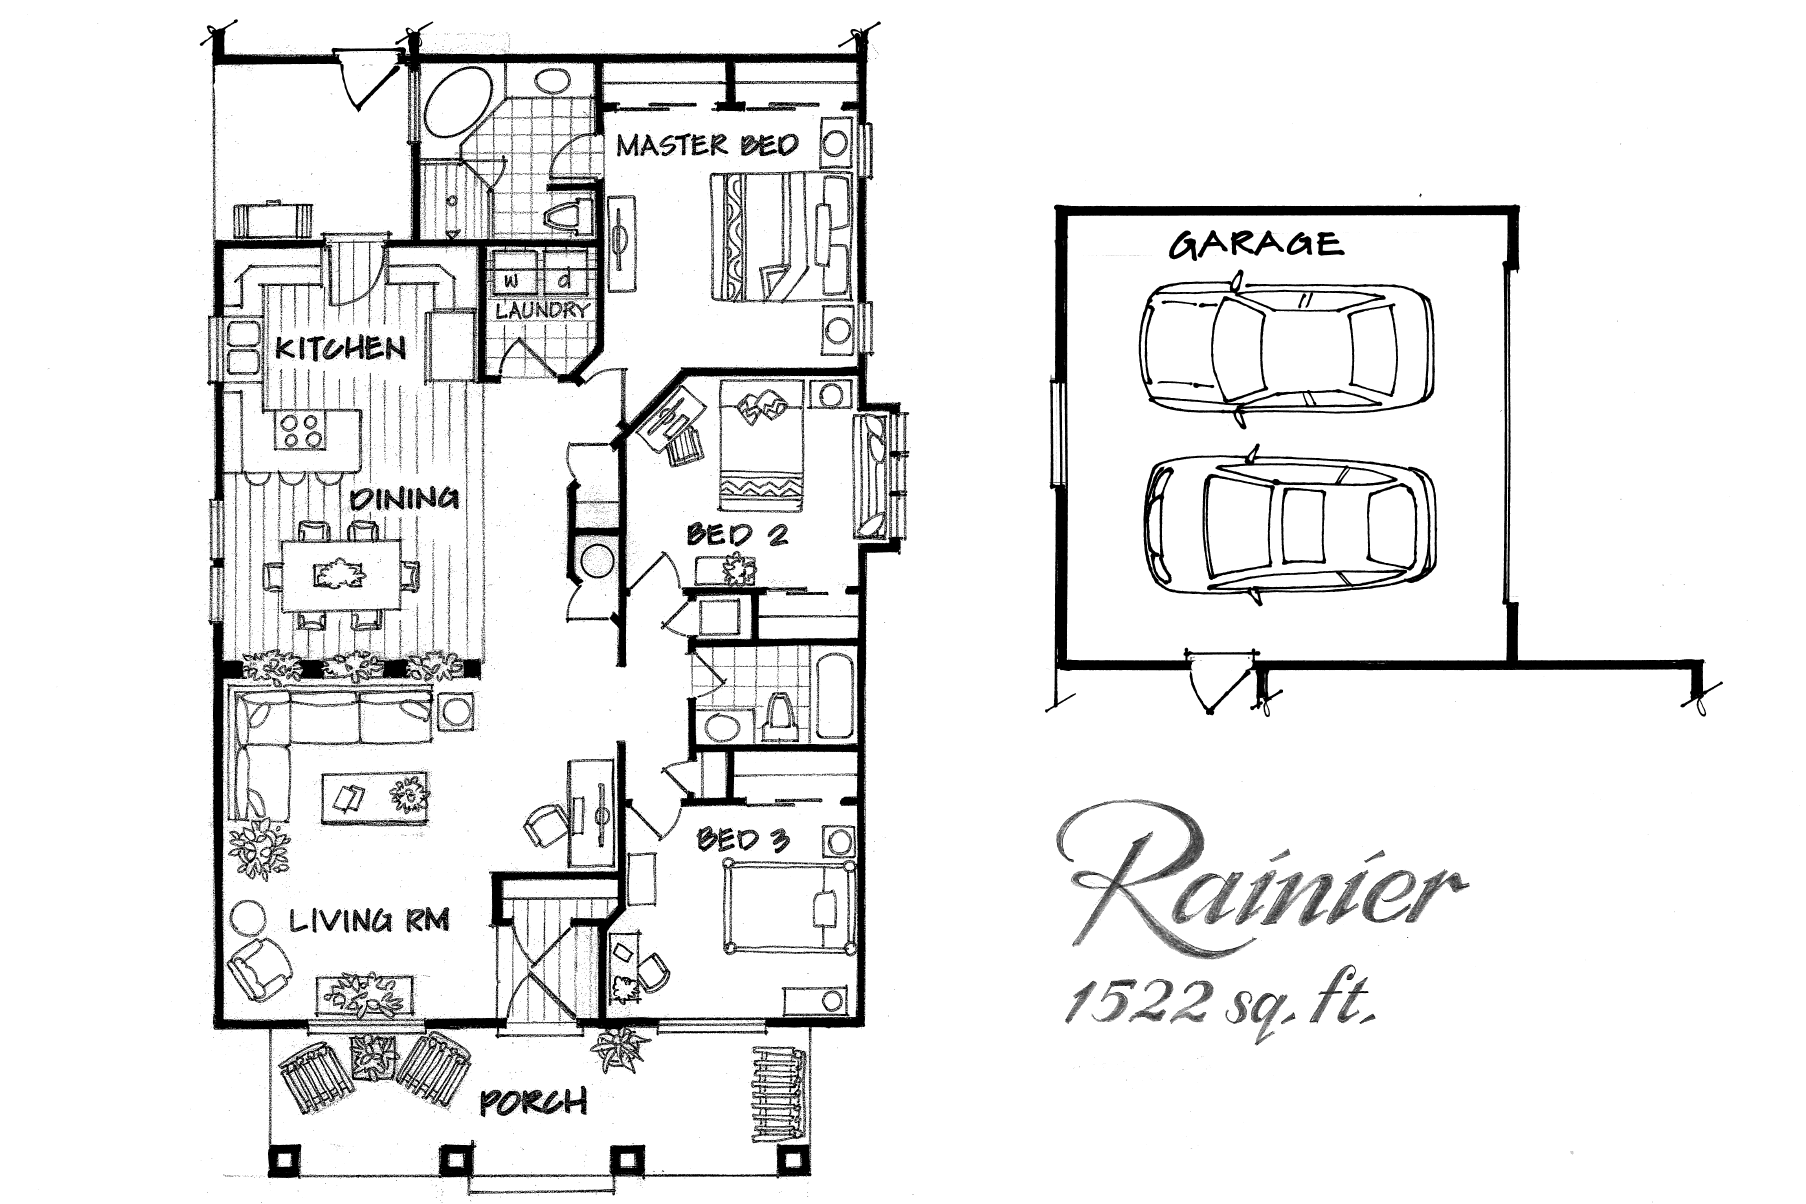 Rainier 3 bed / 2bath